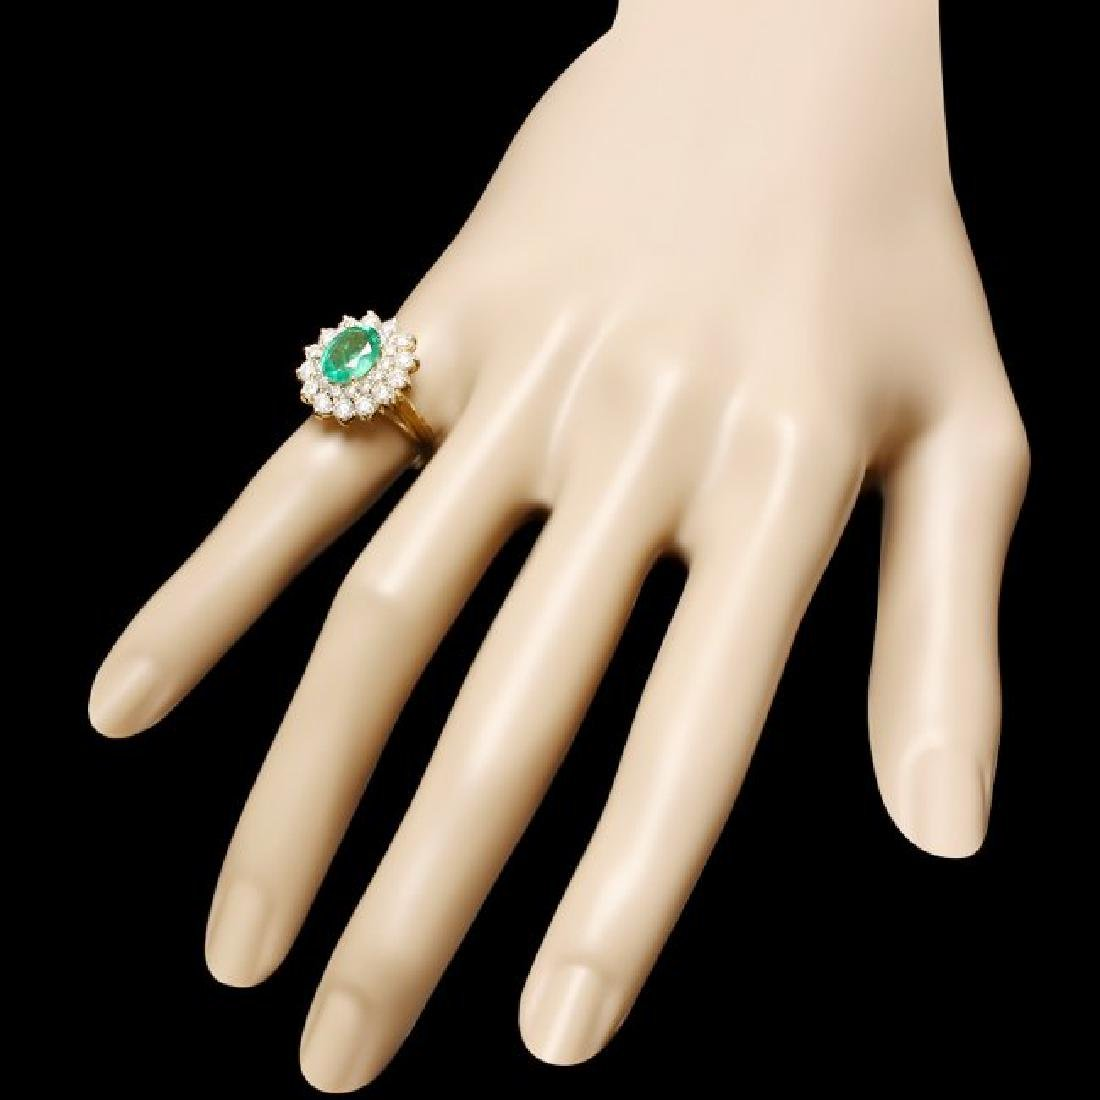 14k Gold 1.50ct Emerald 1.35ct Diamond Ring - 3